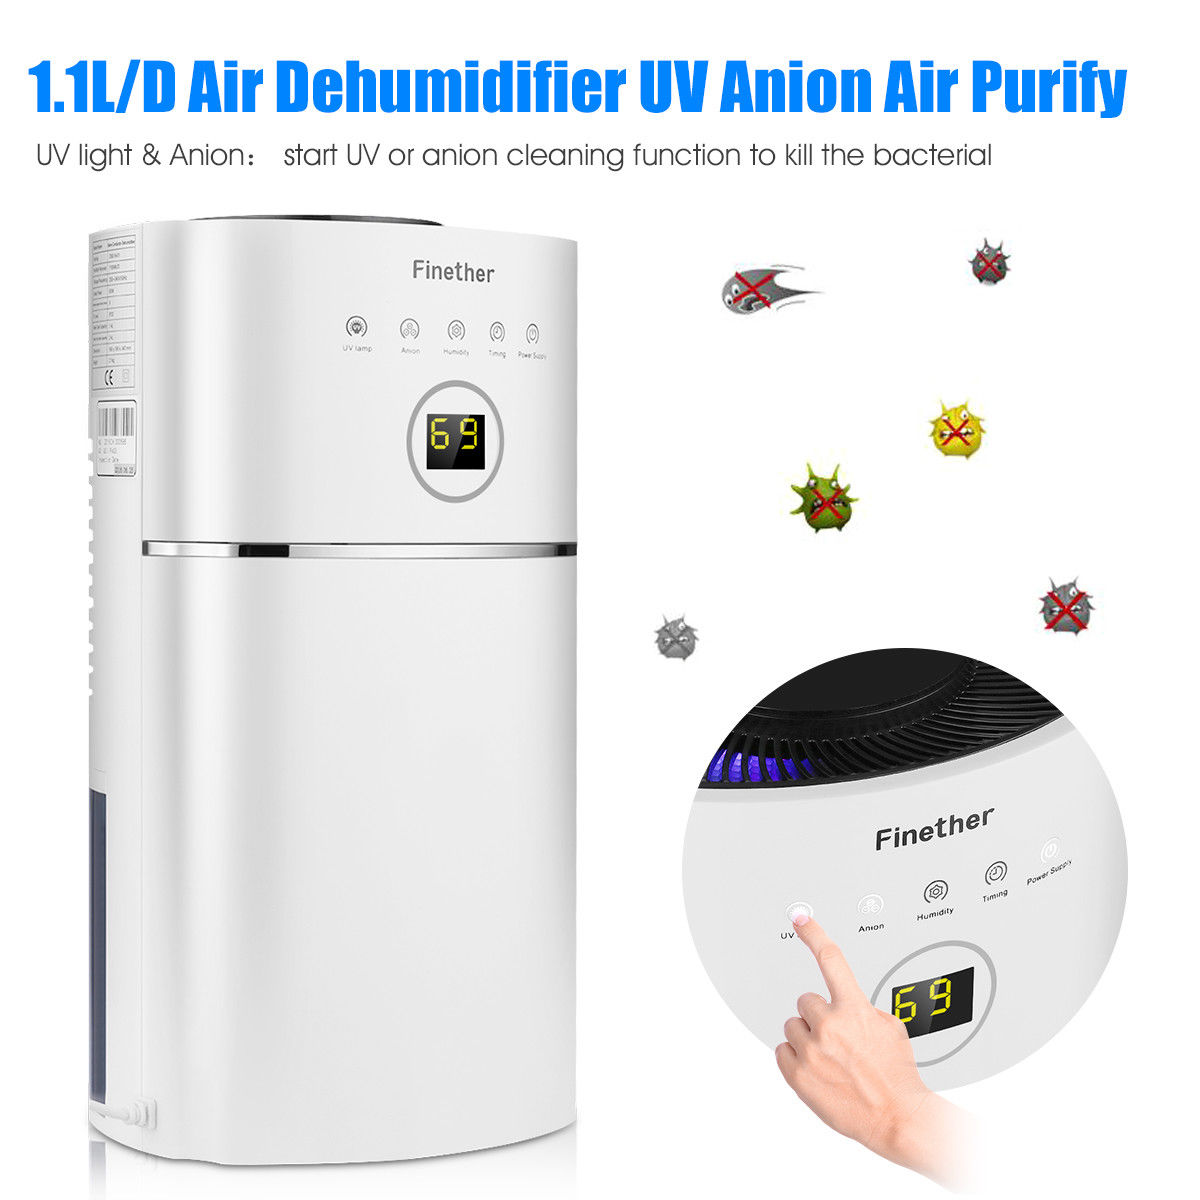 Diy Dehumidifier 2 4l Air Purifying Dehumidifier Anion Uv Air Purifier Bathroom